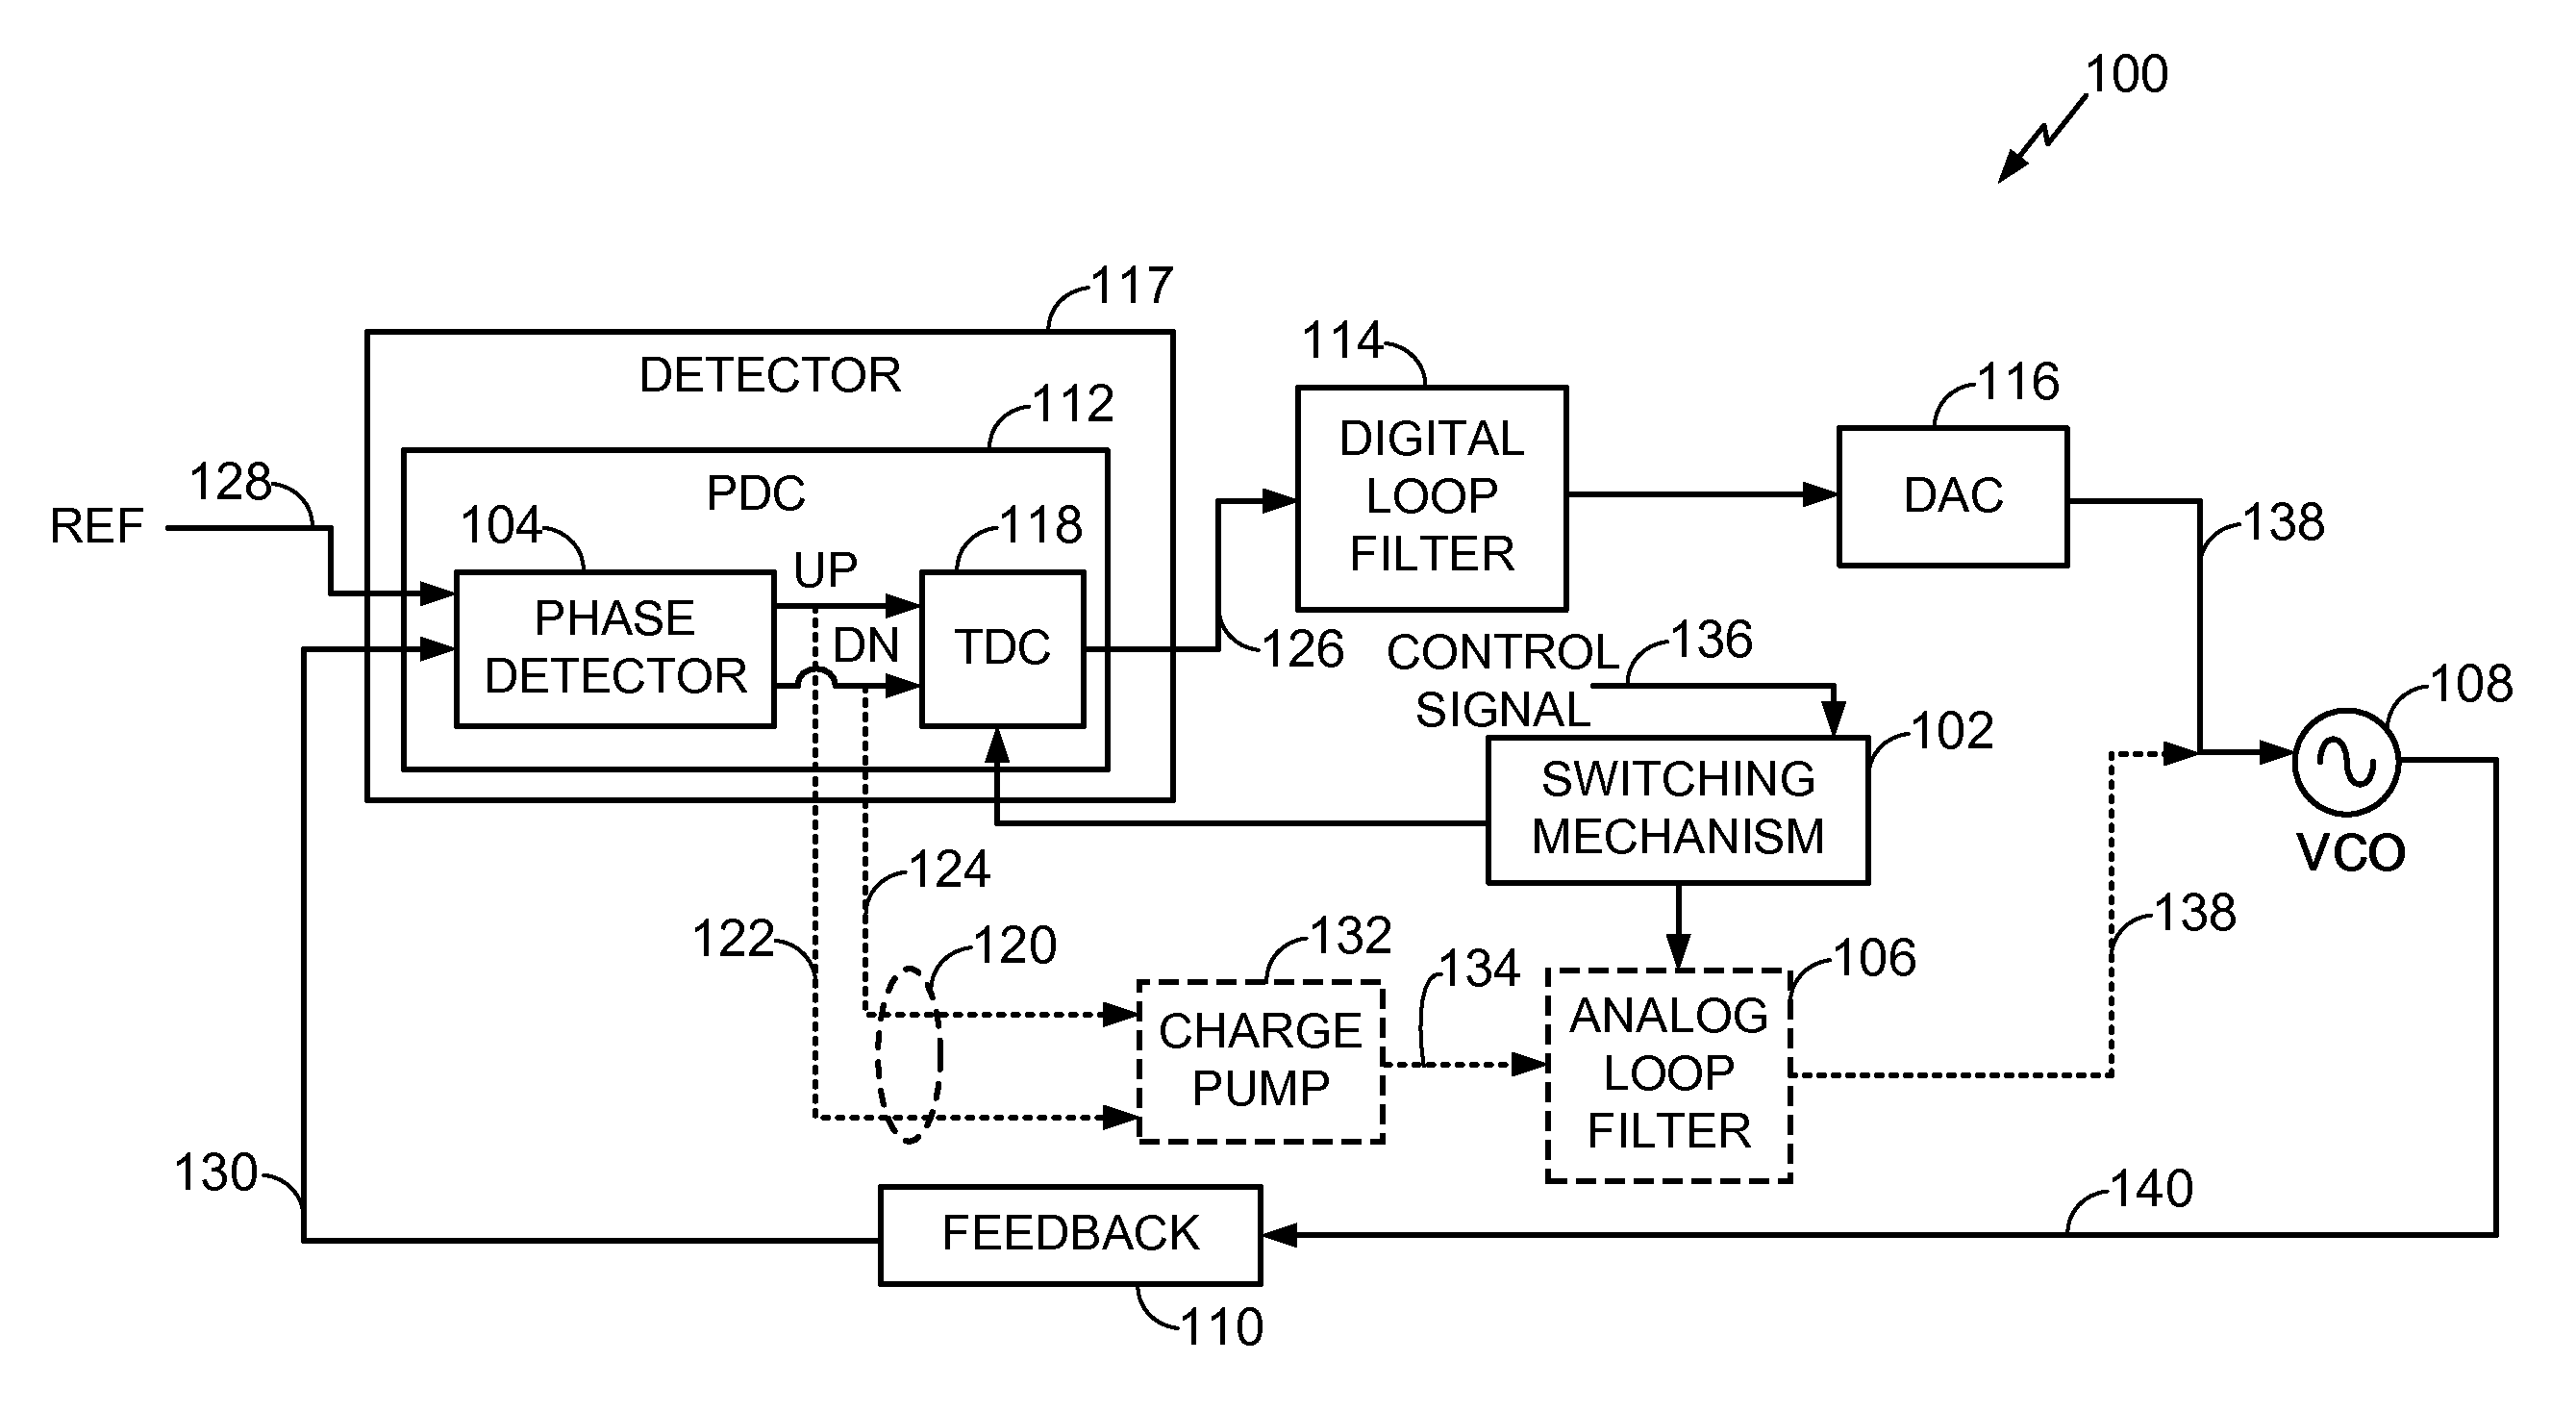 Analytics For Us Patent No 8339165 Configurable Digital Analog Voltagecontrolled Oscillator Vco Using The Timer 555 Is Shown In At Least Phase Detector Voltage Controlled A Time To Converter Tdc Loop Filter And